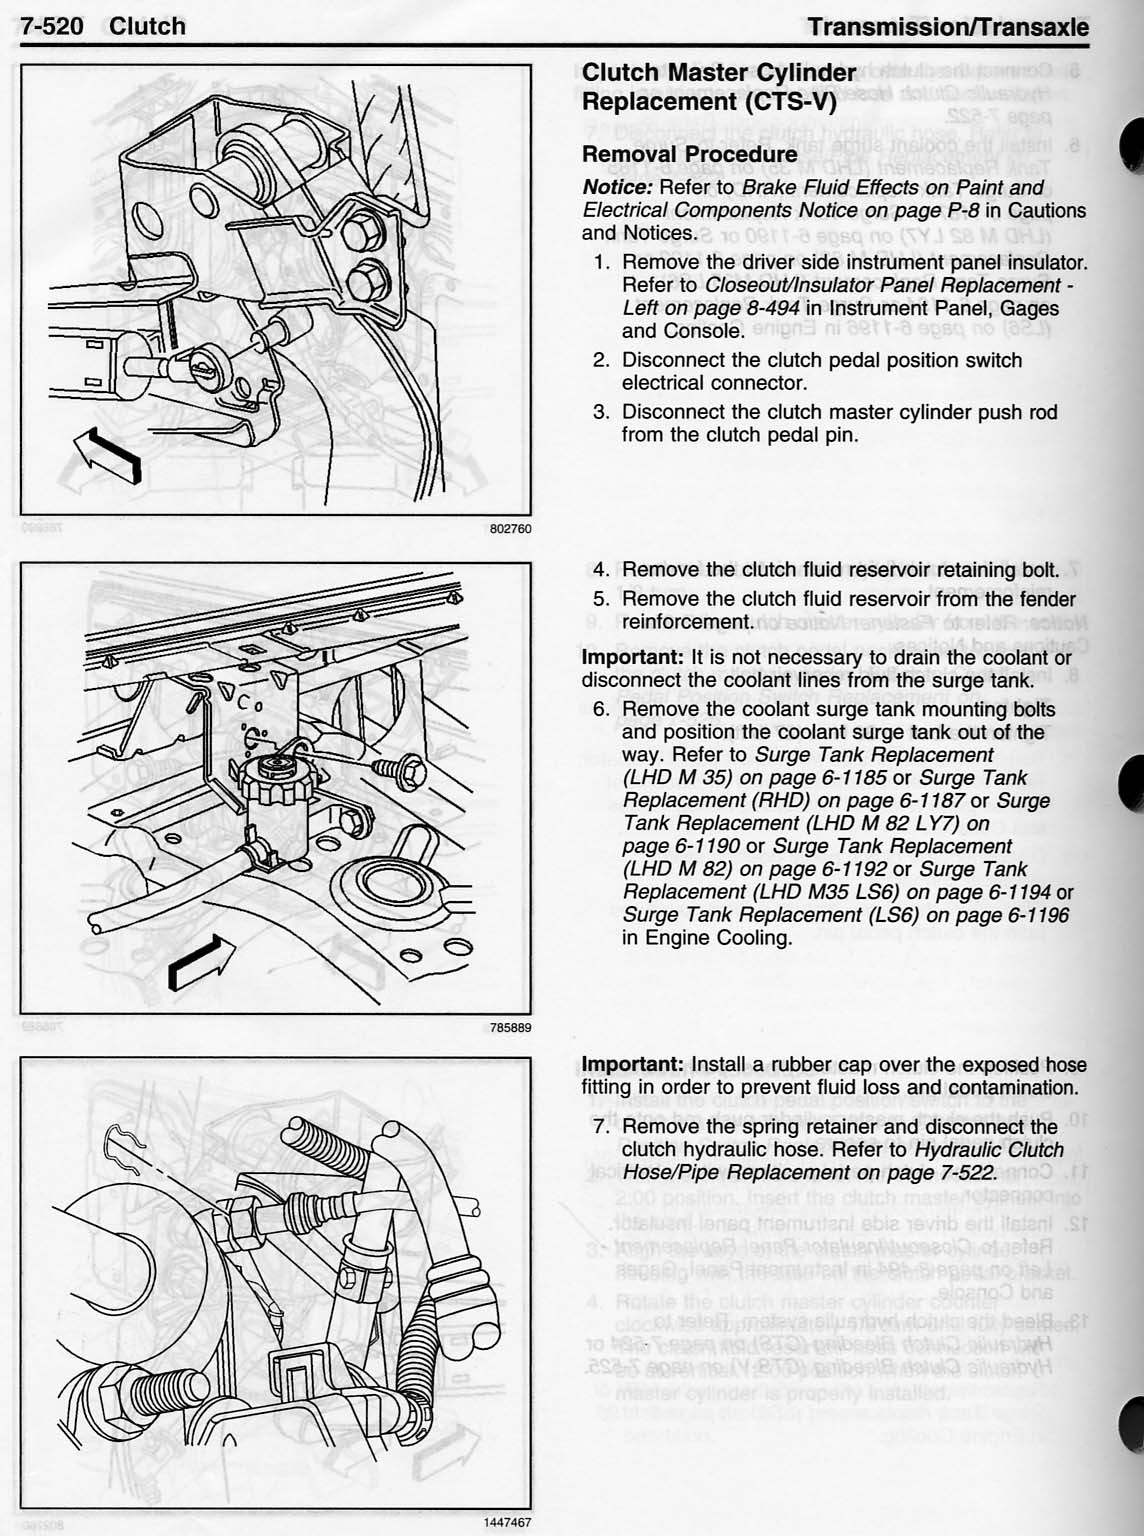 cts cts v faq service manual pages rh cadillacfaq com Cadillac CTS V Automatic 08 CTS-V Manual